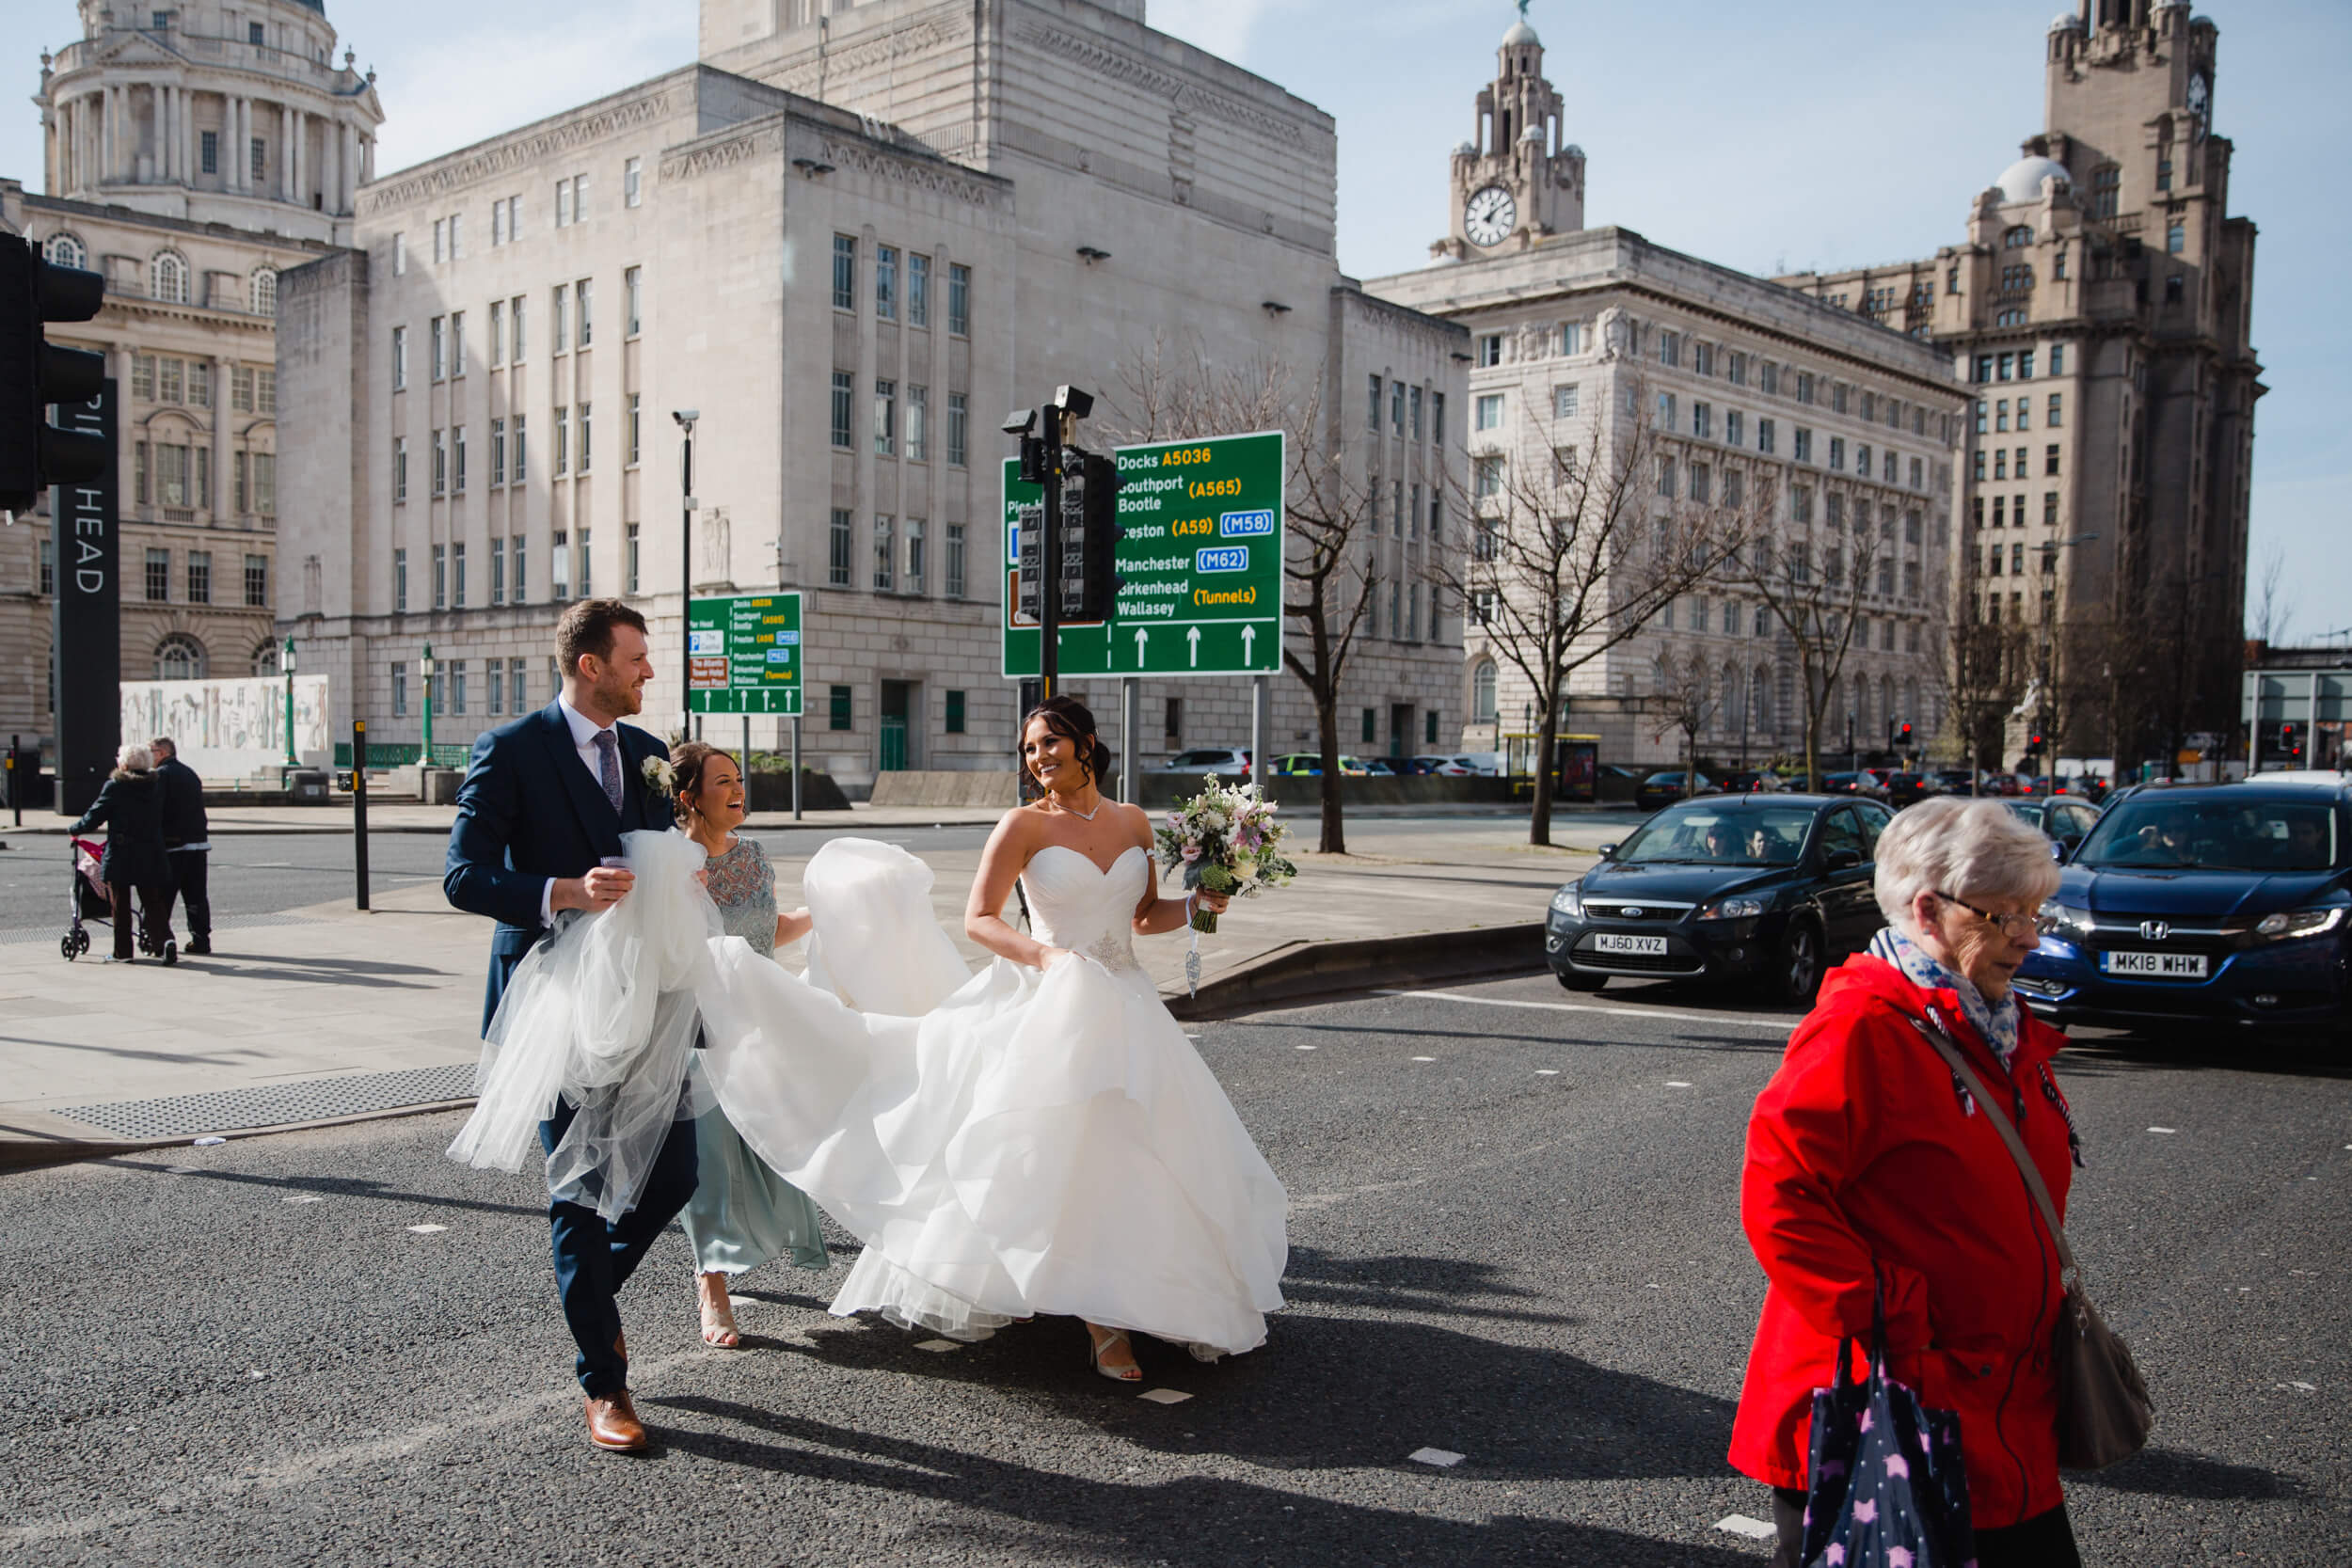 groom and bridesmaid helping carry bride and dress across road at 30 James Street